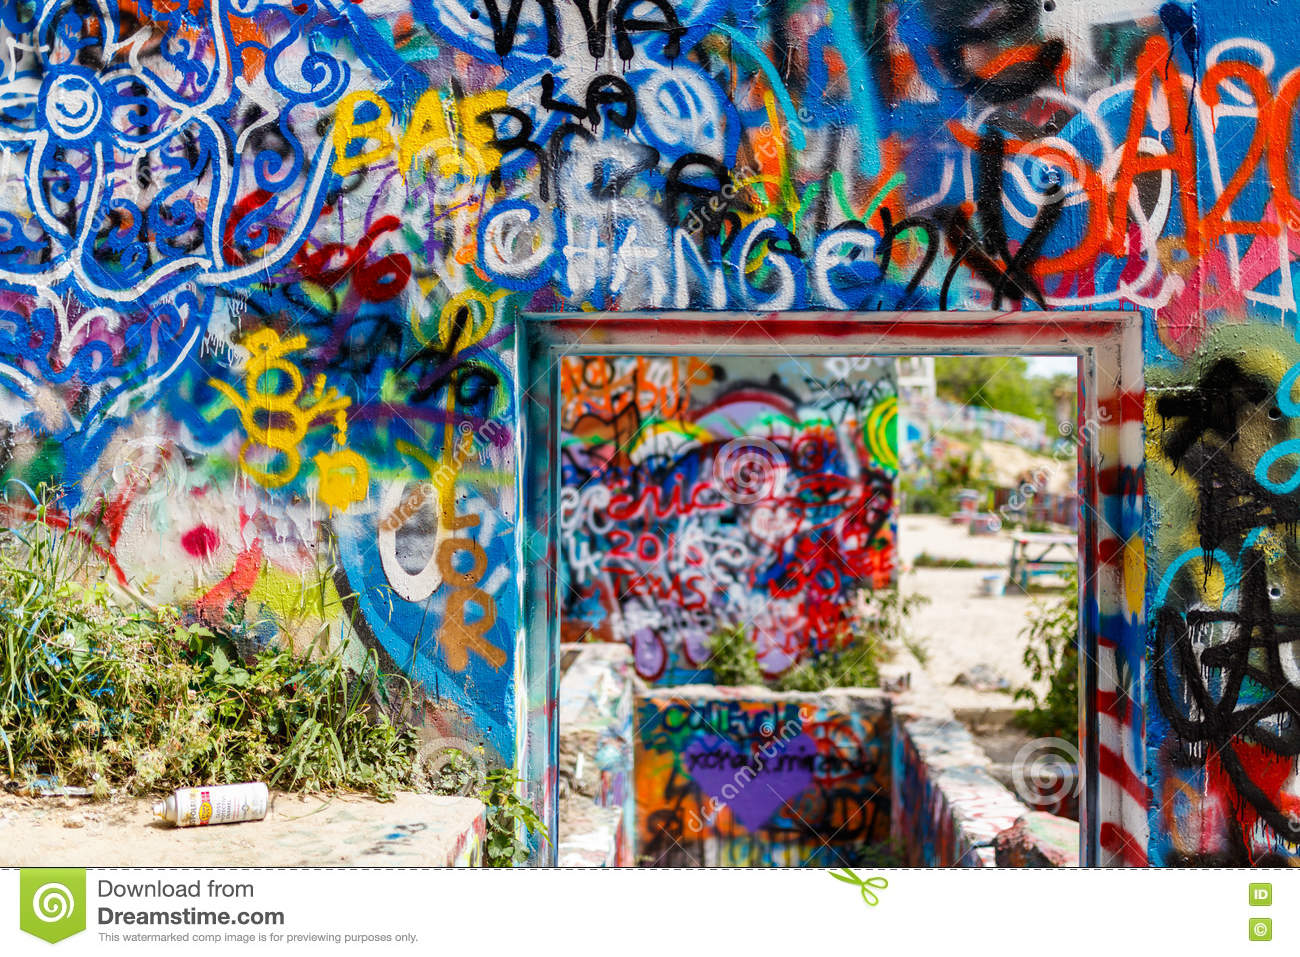 Austin texas usa april 8 2016 colorful graffiti on the walls of the popular hope outdoor gallery on baylor street near downtown austin